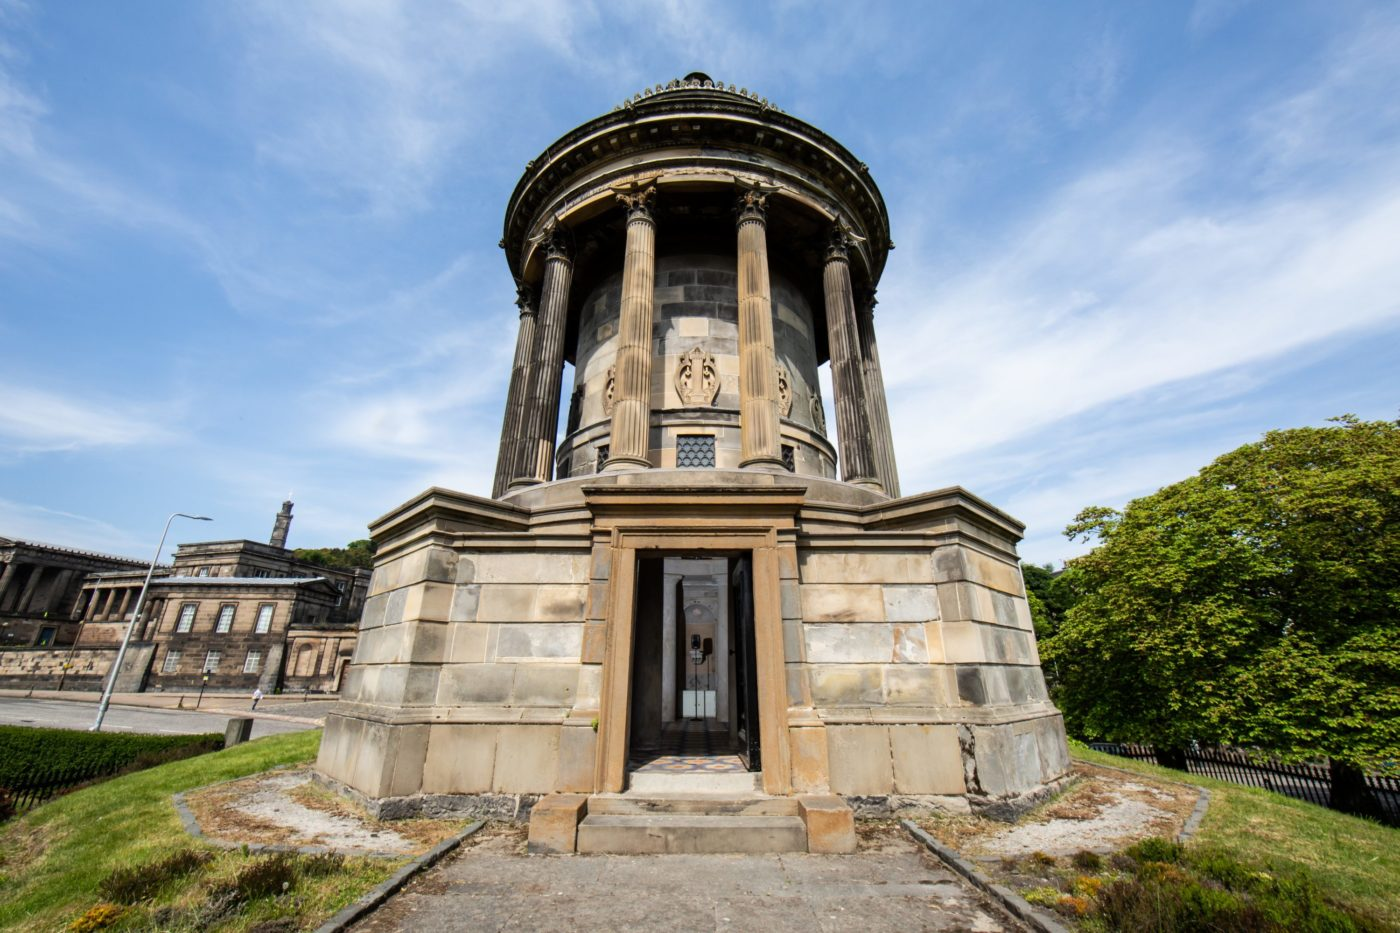 In the centre the Burns Monument dominates as the image has been taken from a low angle. The Monument is a neoclassical building, made of sandstone, with six columns supporting the roof of the building. A stone path is in the lower centre of the image, with grass verges on either side, showing the slight hill in which the Monument stands. In the doorway of the image is a tall free-standing speaker. On the right hand side is a green luscious tree, with a black wrought iron fence dividing the tree from the grass verge of the Burns Monument. In the background on the left is the Old Royal Highschool with Calton Hill's Nelson Monument visible in the centre above the Old Royal Highschool building. In front of the Old Royal Highschool is Regent Road, with a street light, and a green hedge dividing the road from the grass verge of the Monument.